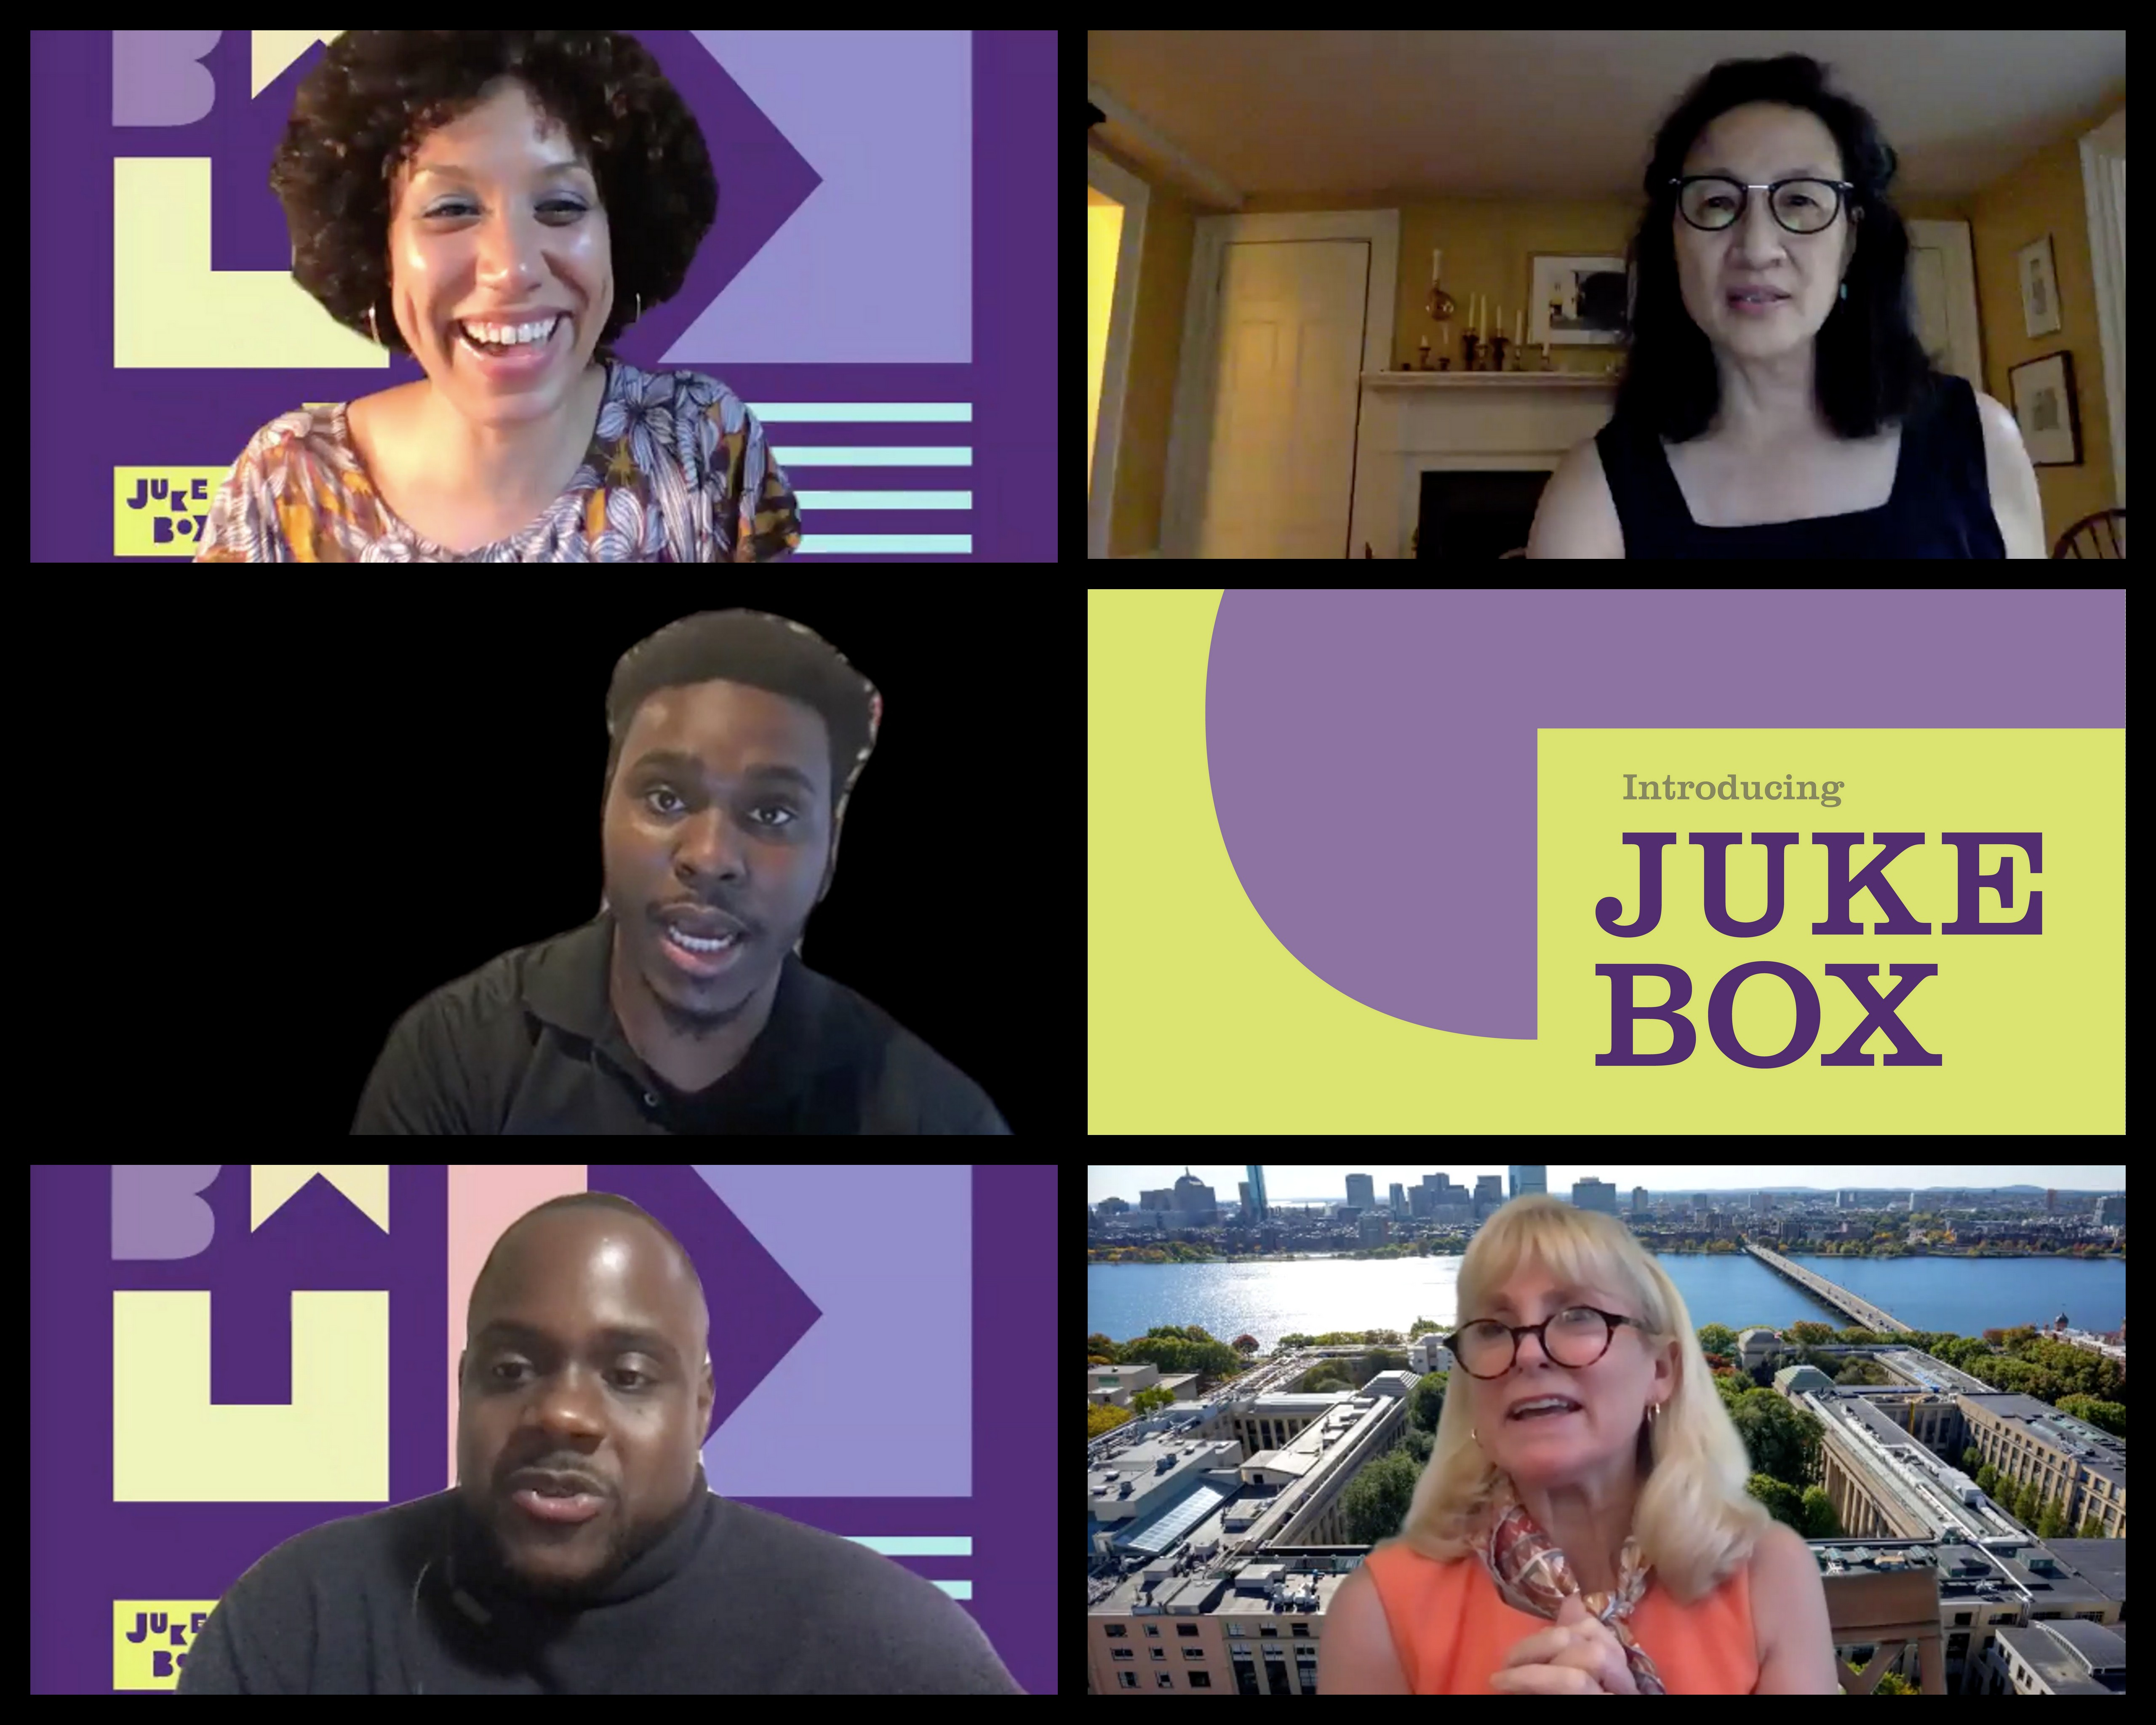 """Video stills from """"Introducing Jukebox,"""" Jukebox's kick-off virtual program which took place on July 28, 2020. Pictured from left to right: Elisa Hamilton, Jukebox Artist/Creator - Lillian Hsu, Director of Public Art, Cambridge Arts Council - M. Moses Michel, Co-Founder, The Loop Lab - Chris Hope, Co-Founder and Executive Director, The Loop Lab - Stephanie Couch, President, Foundry Consortium   AVIXA"""